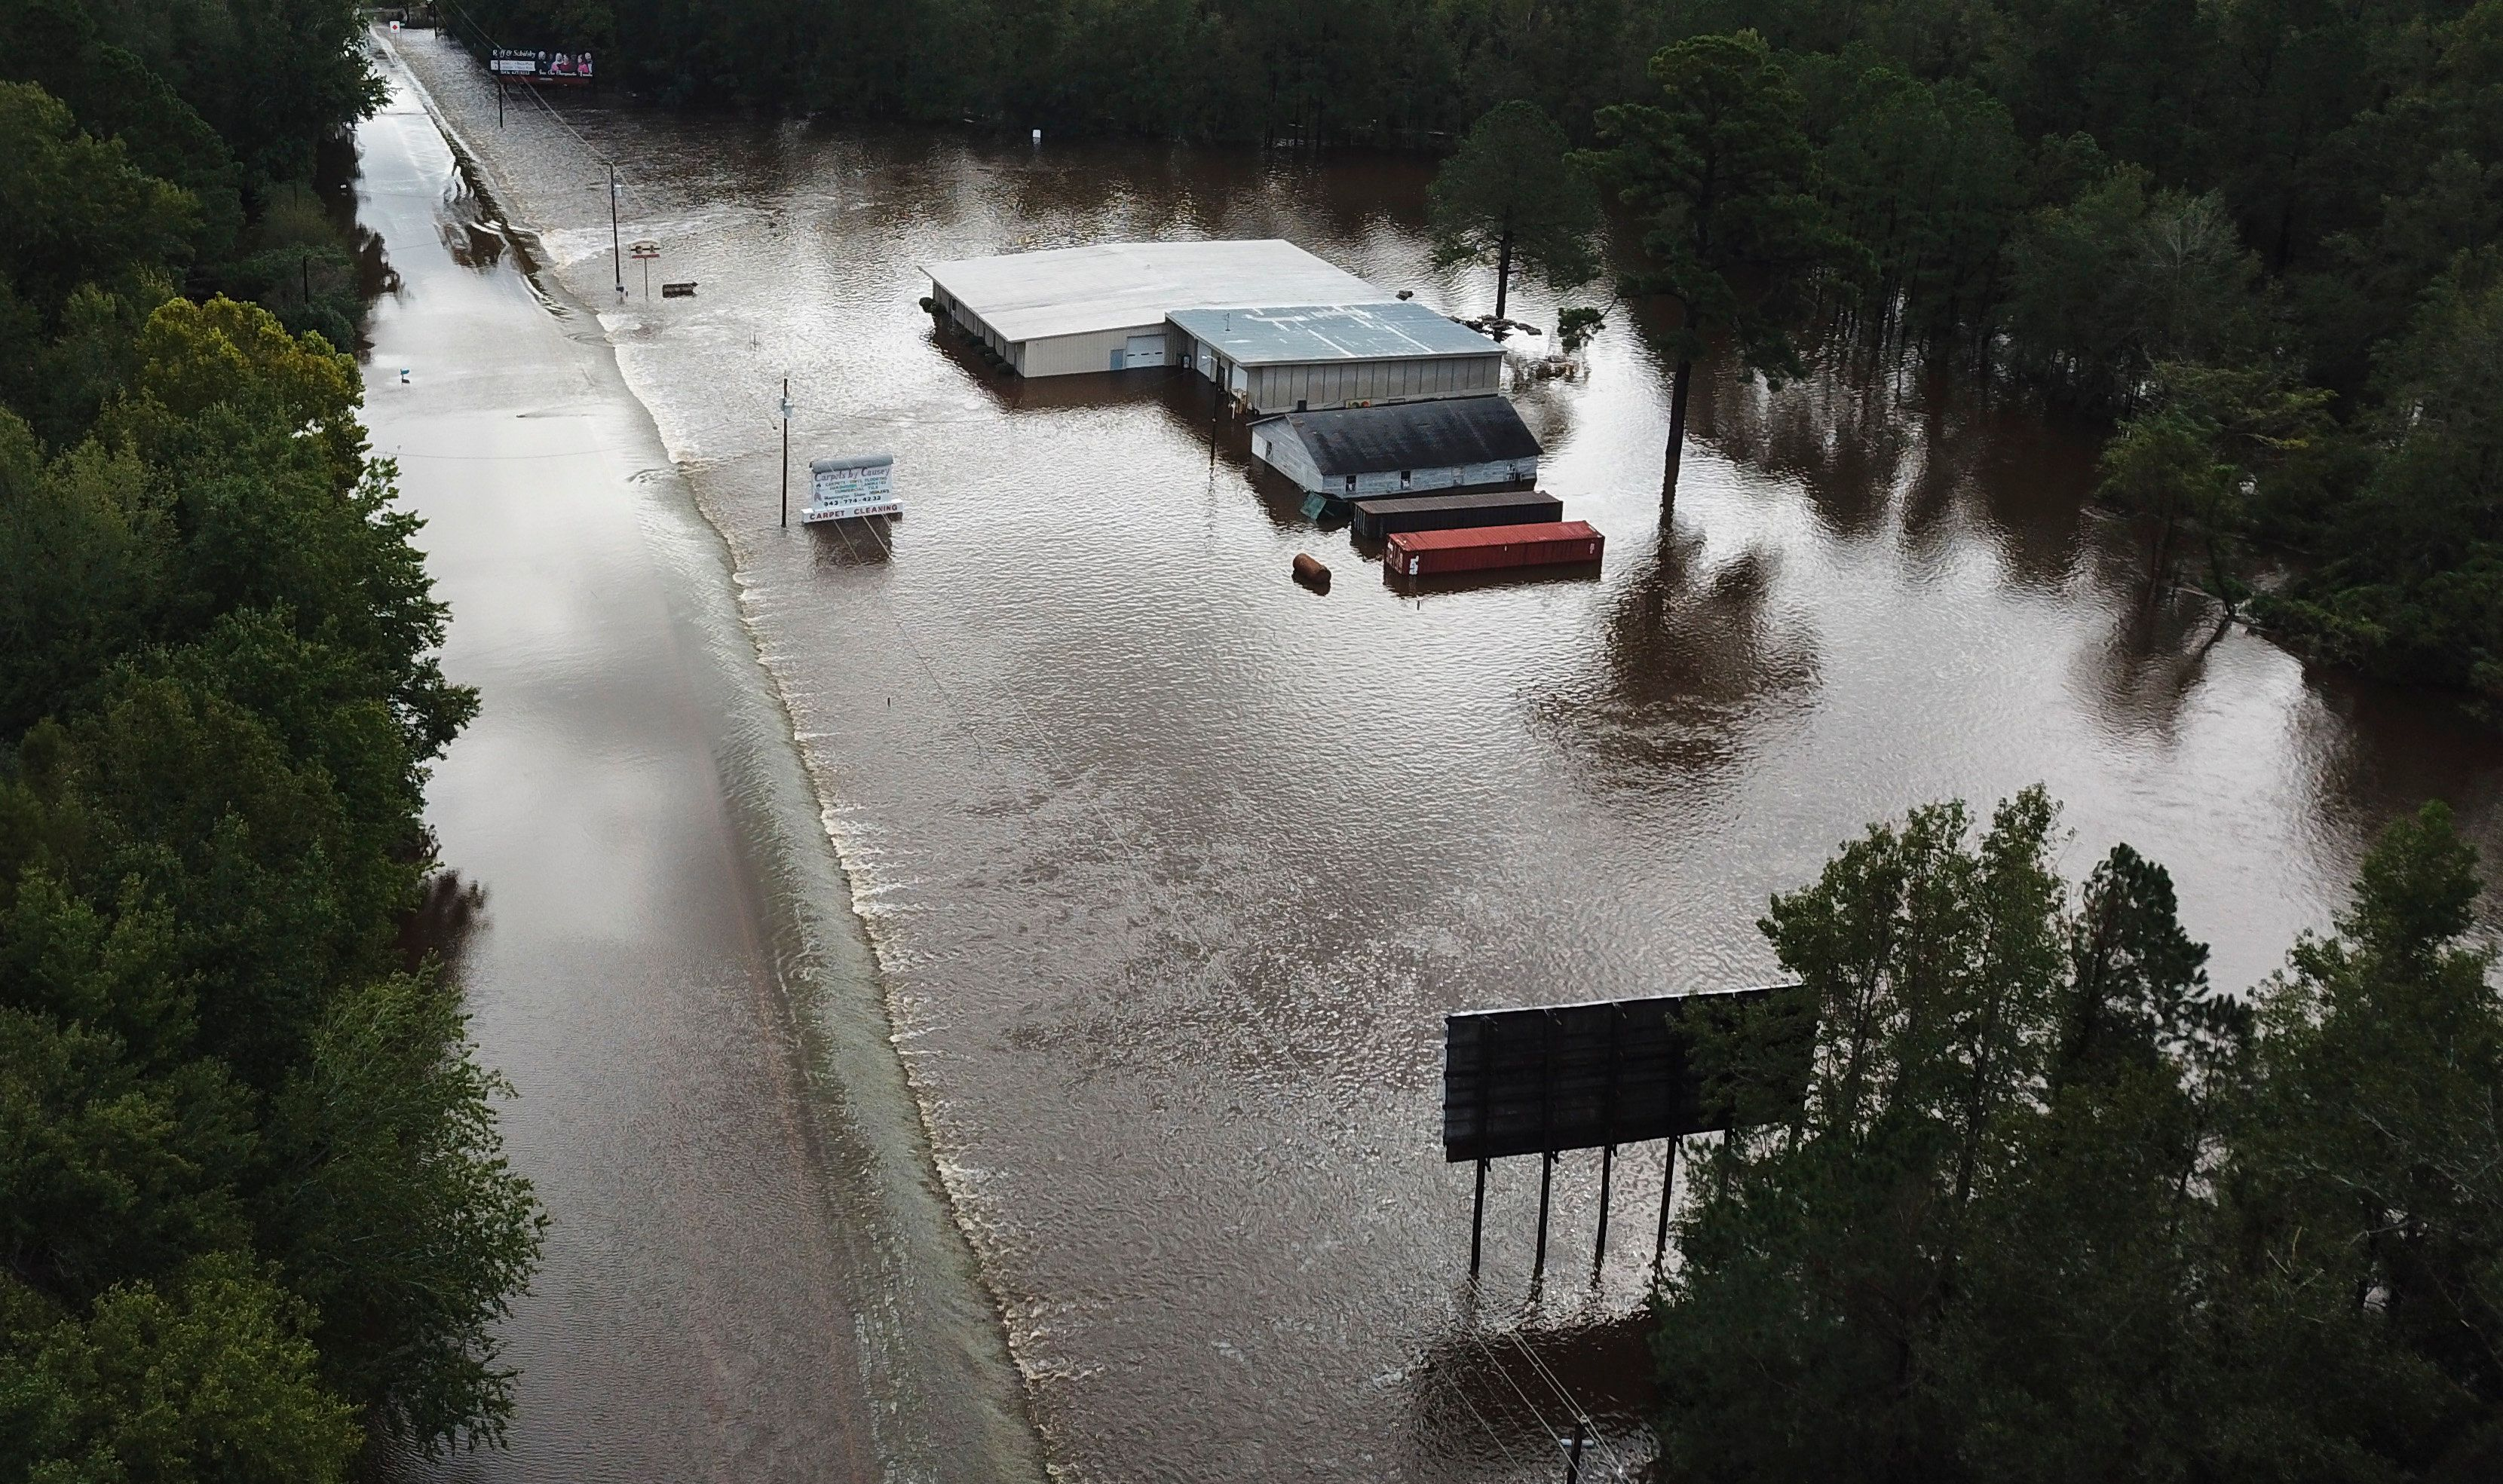 Two detainees in sheriff's van drown in South Carolina floodwaters